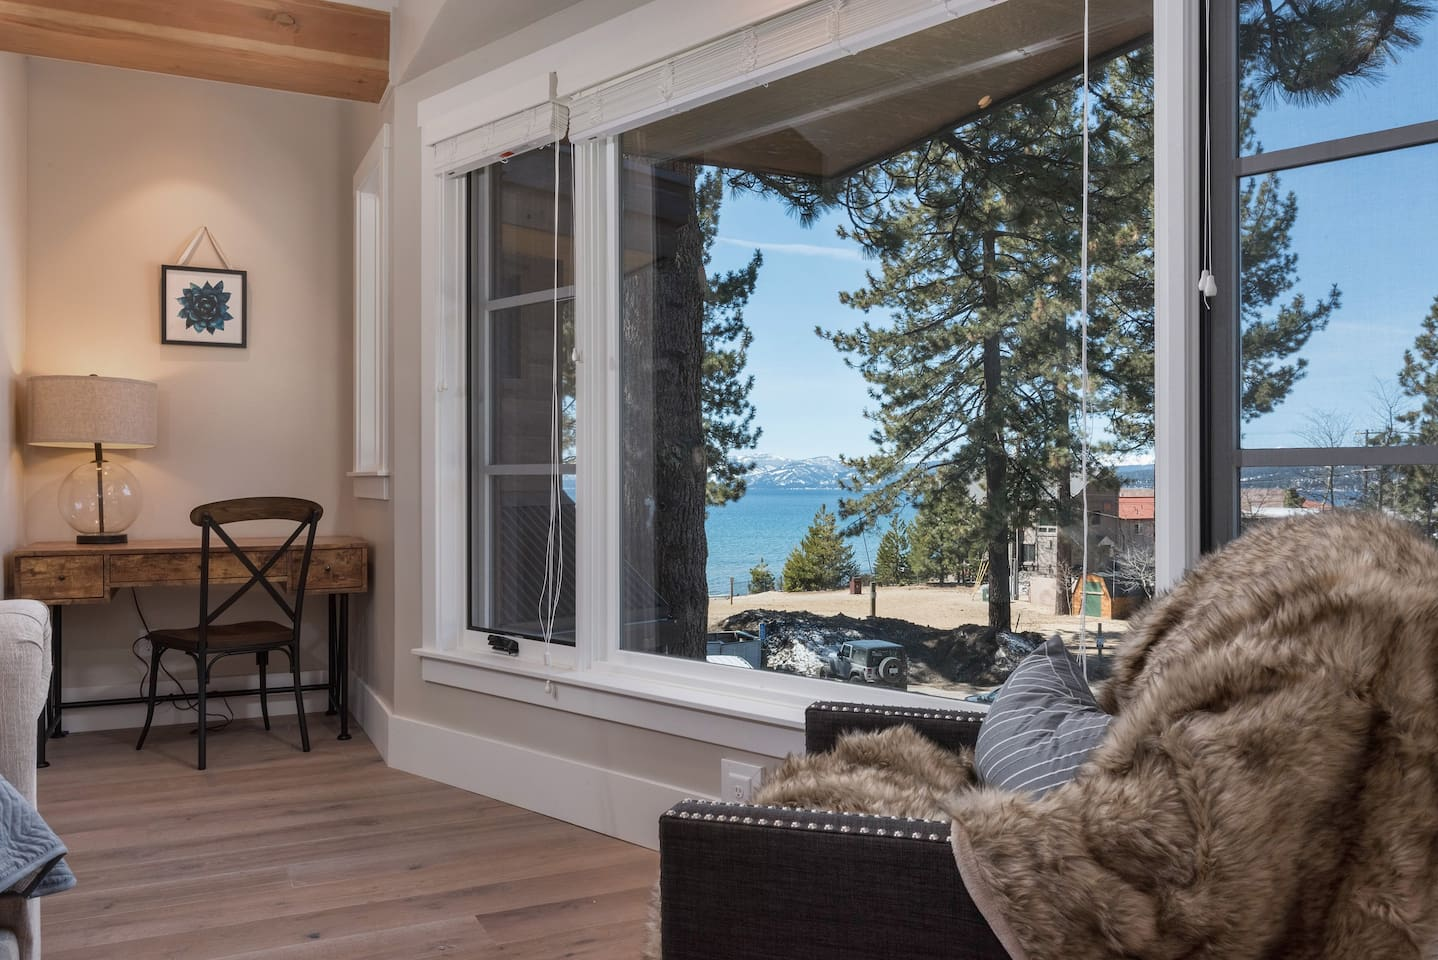 Soak up North Lake Tahoe's natural beauty from the master bedroom's large window.